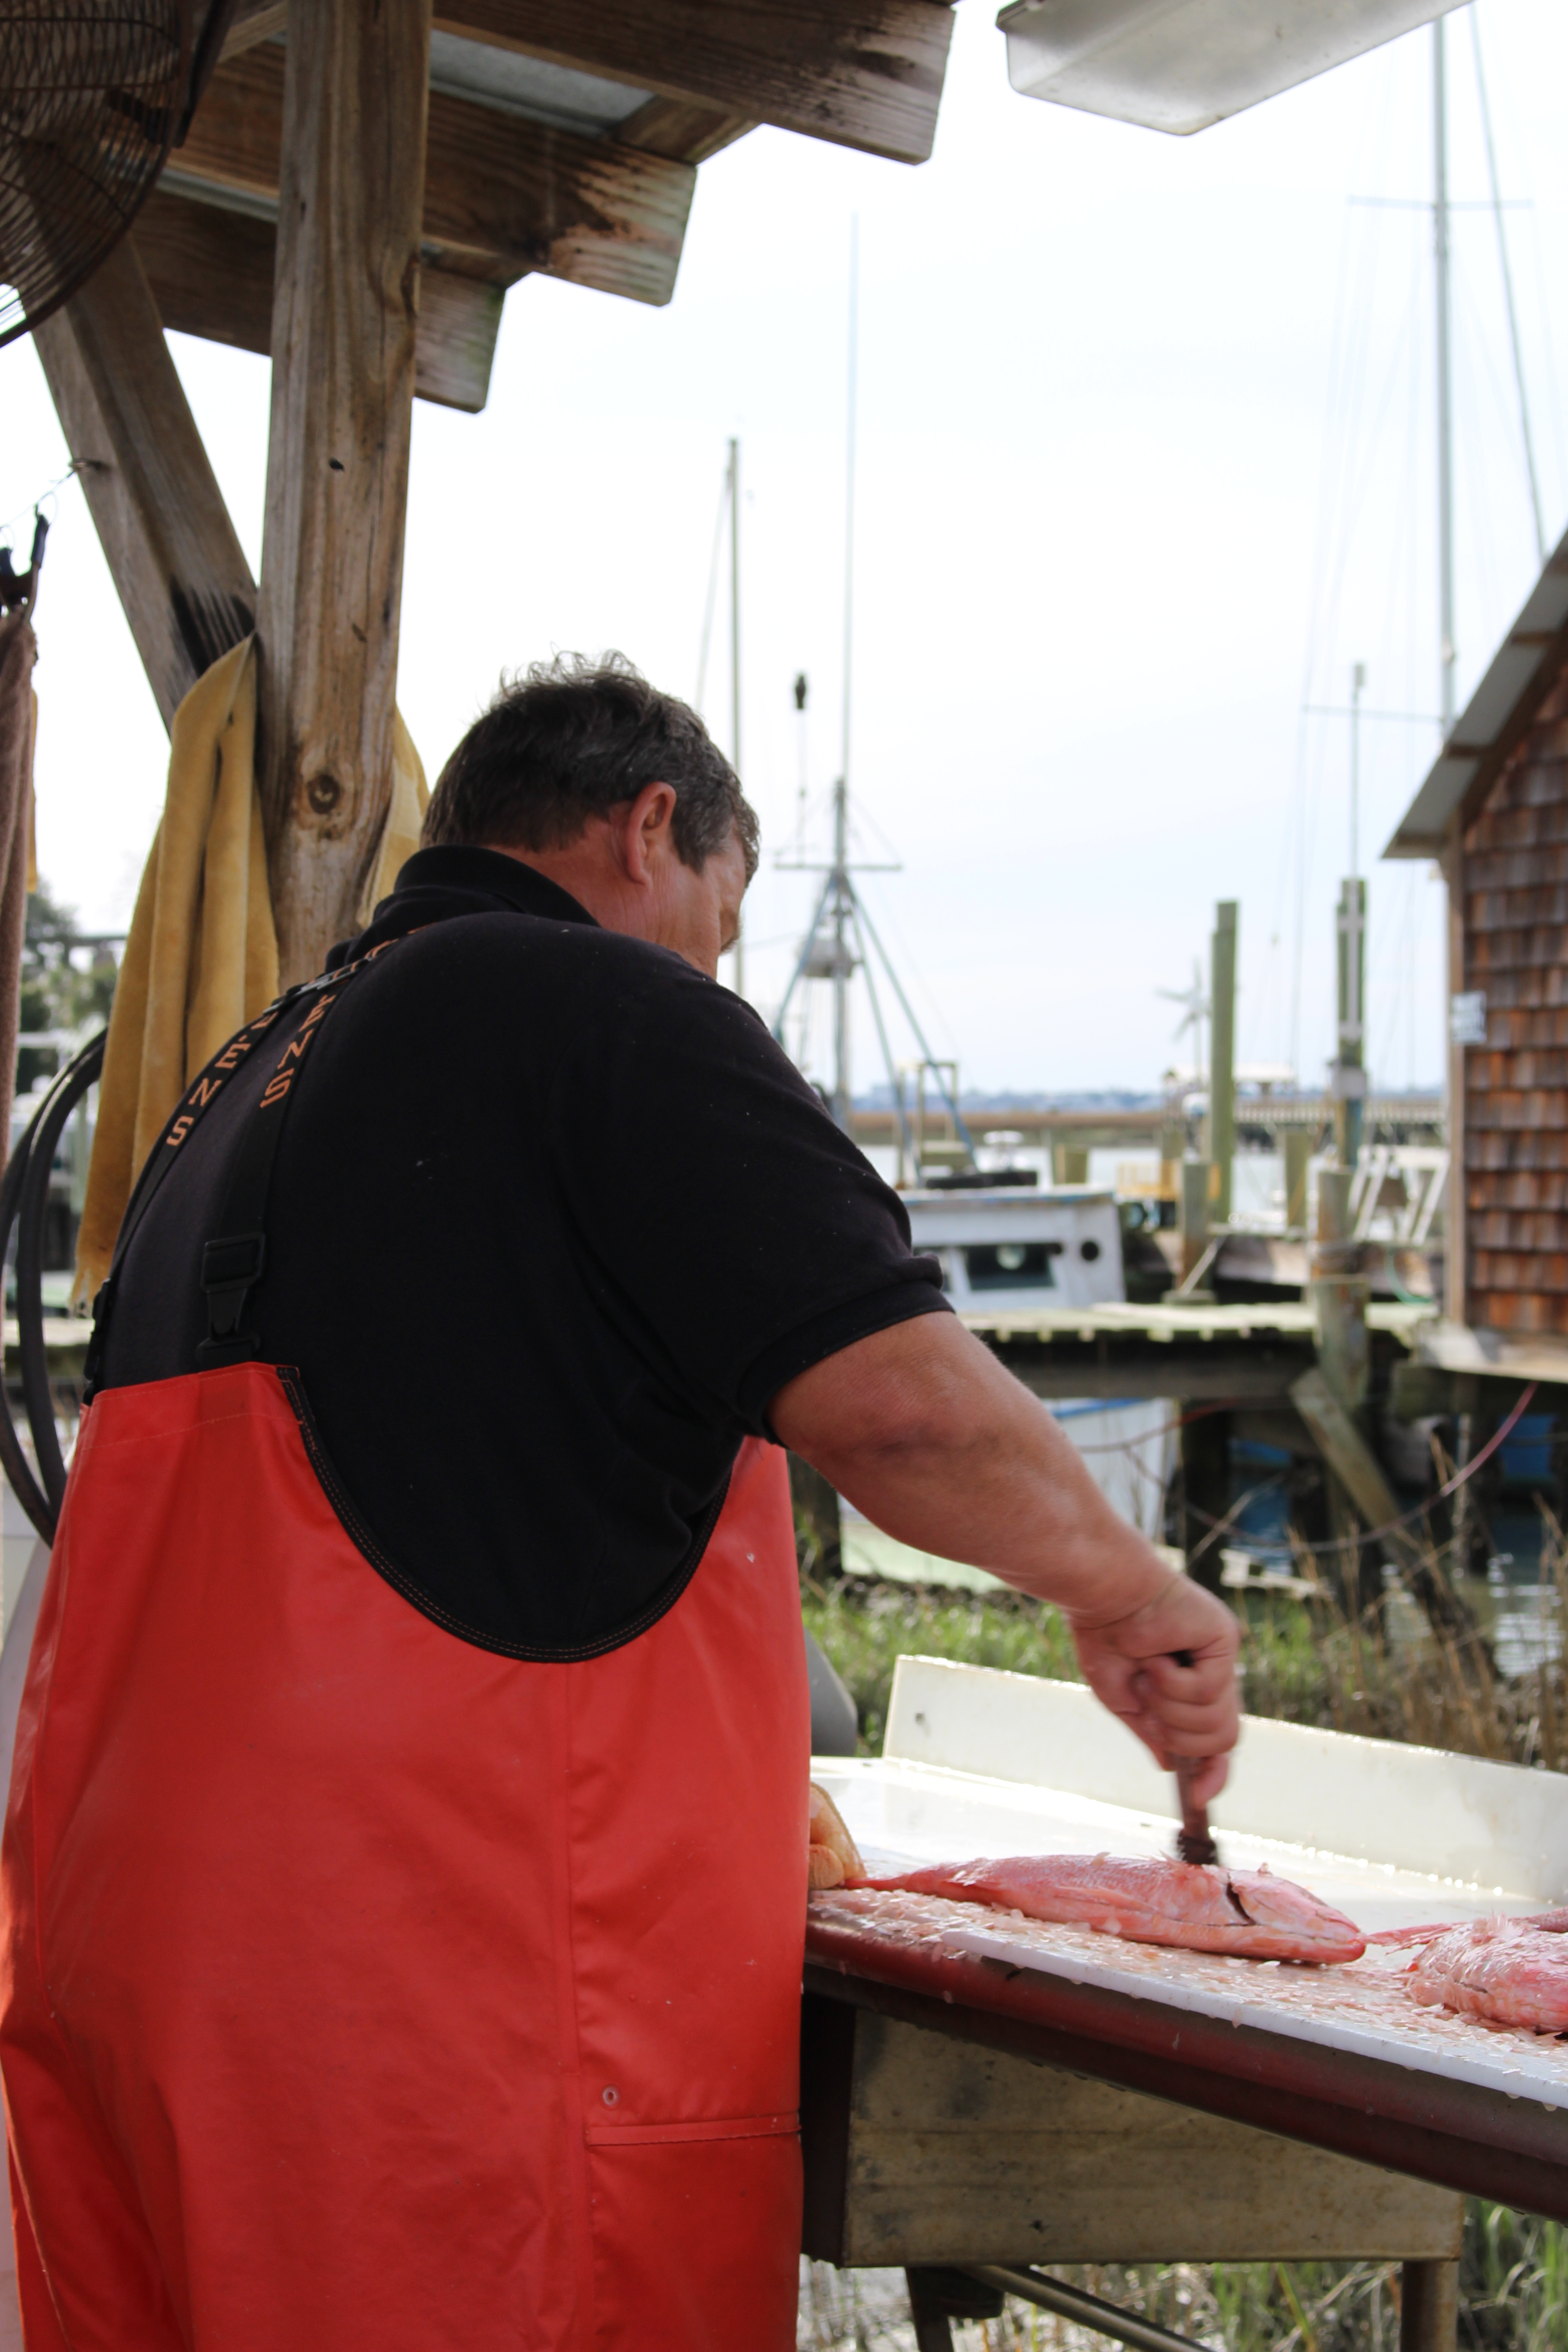 picking up red snapper at docks